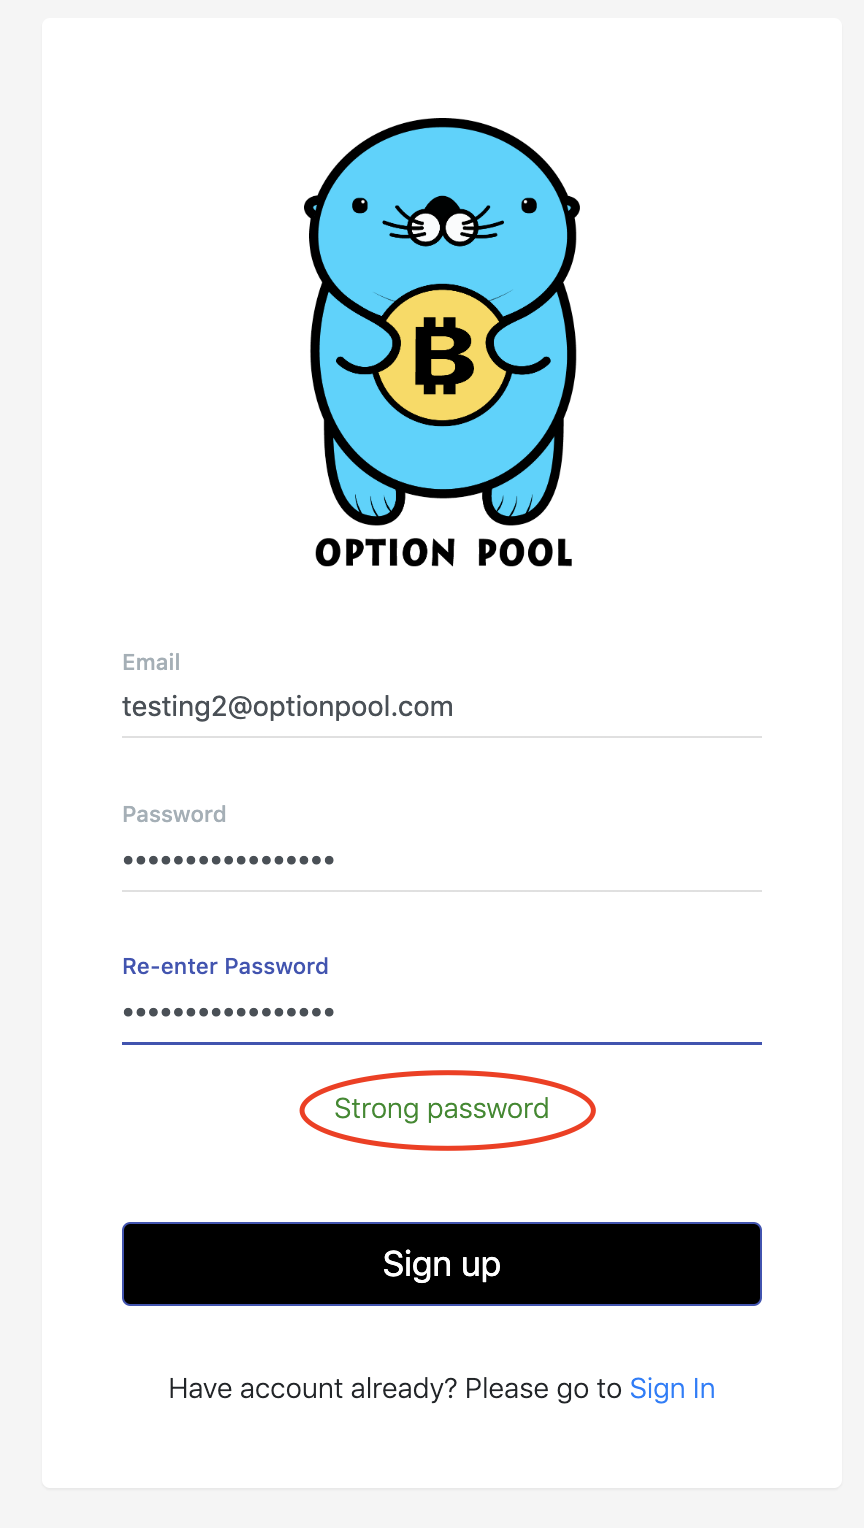 account creation form at Option Pool, with password security highlighted in a red circle